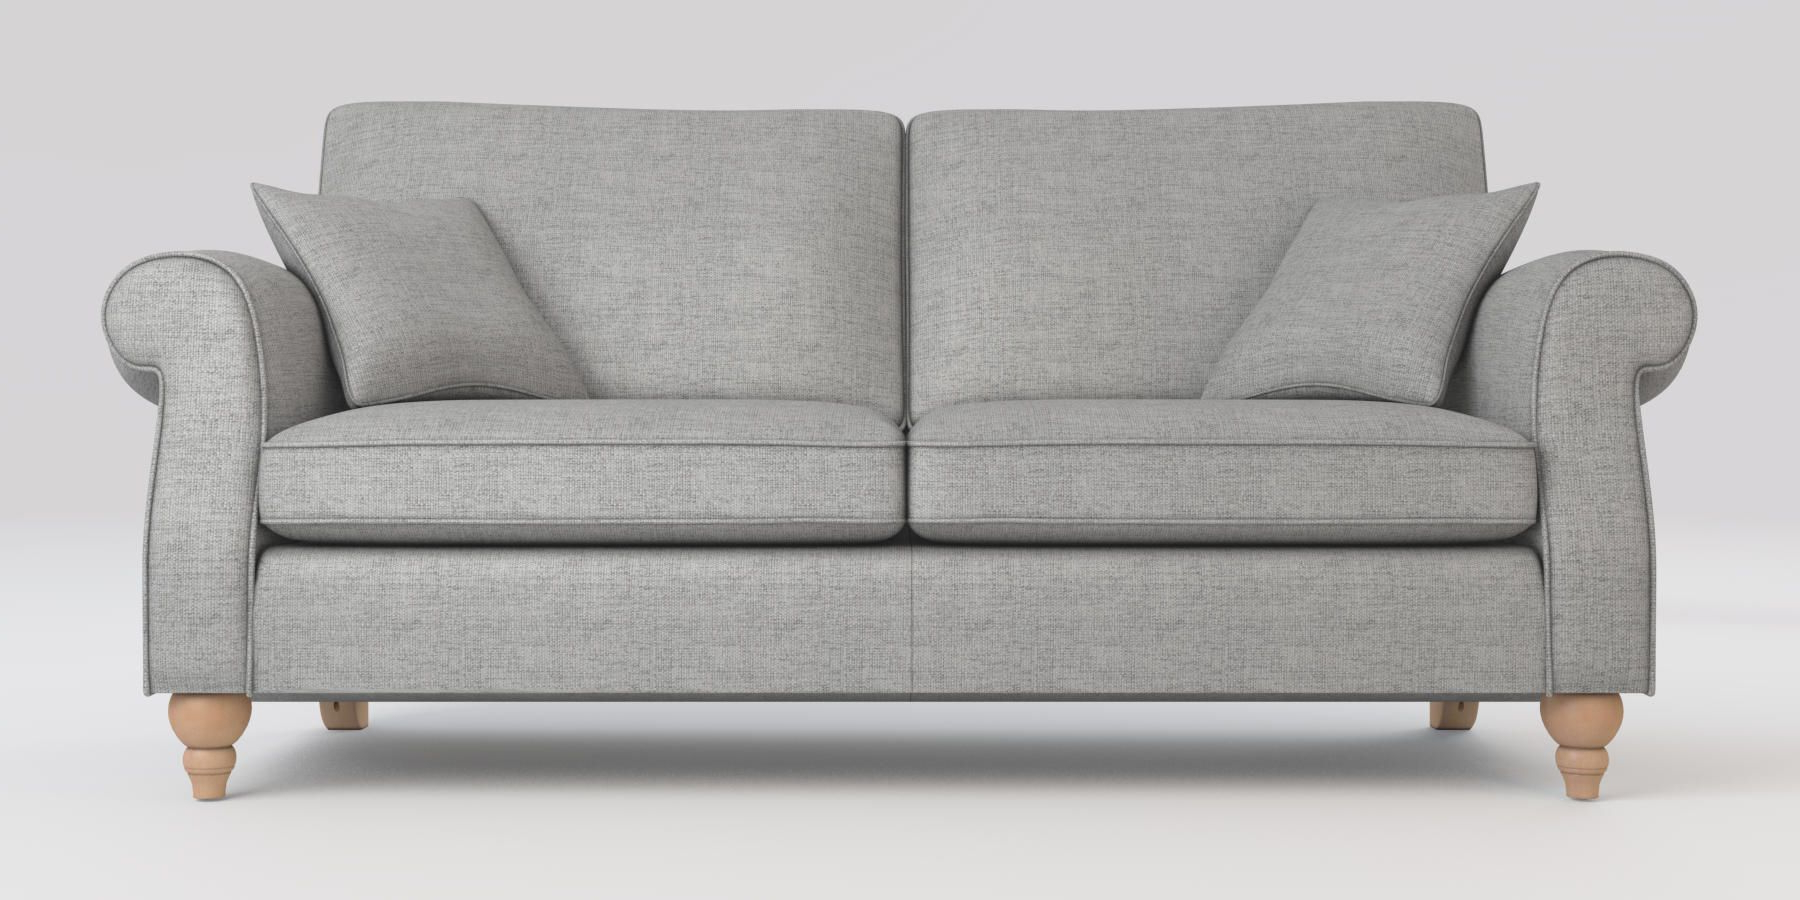 Calvin Concrete Gray Sofas Pertaining To 2018 Buy Ashford Firm Sit Large Sofa (3 Seats) Textured Weave (View 13 of 15)